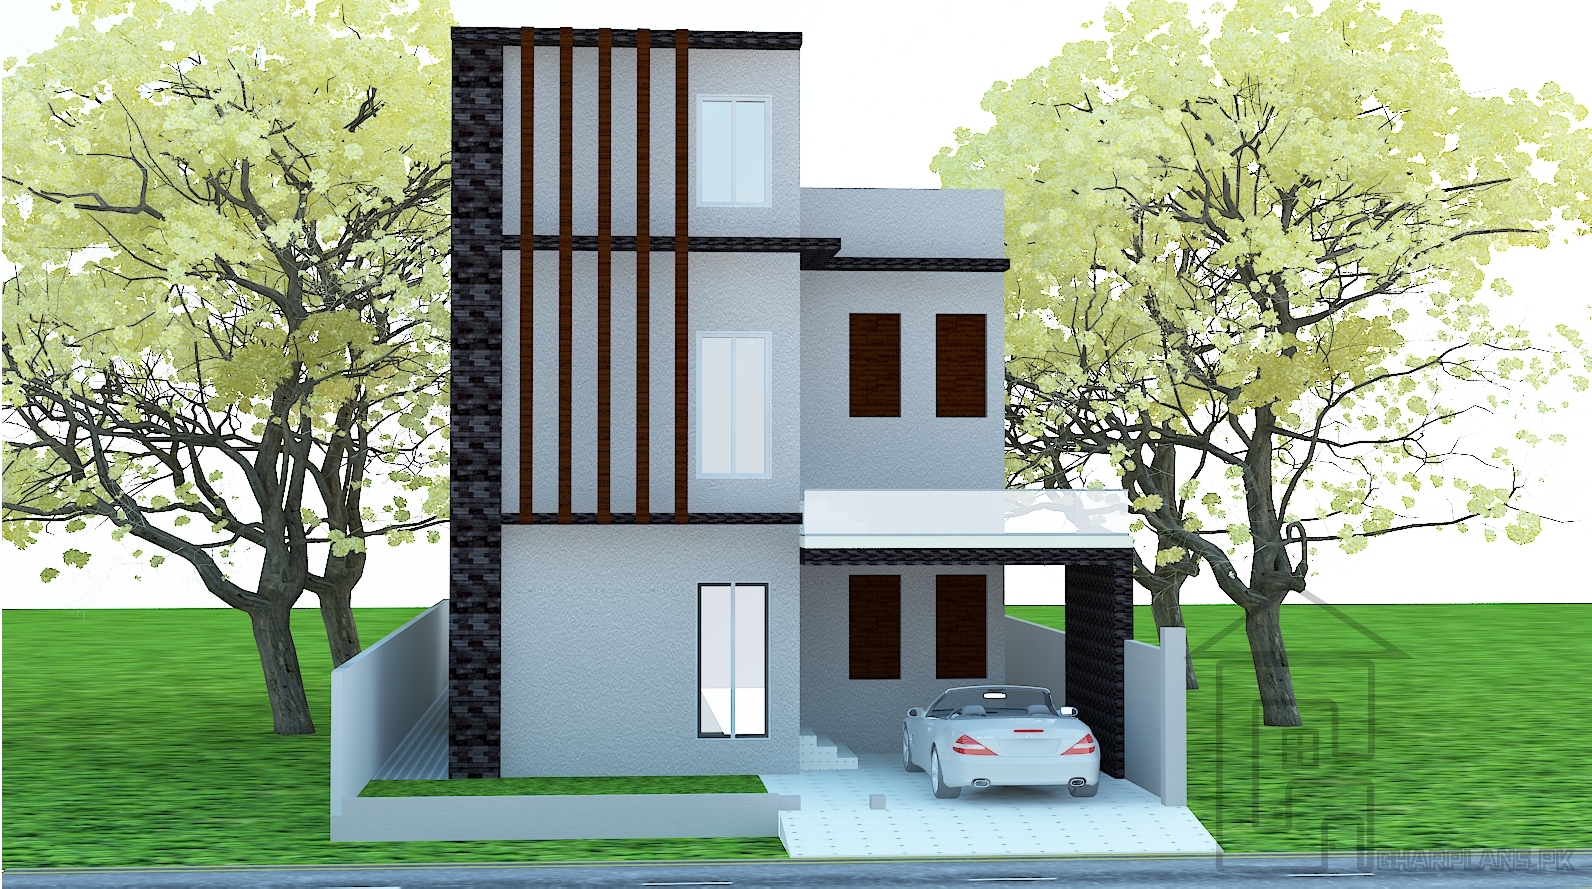 7 marla house map design with house front elevation and